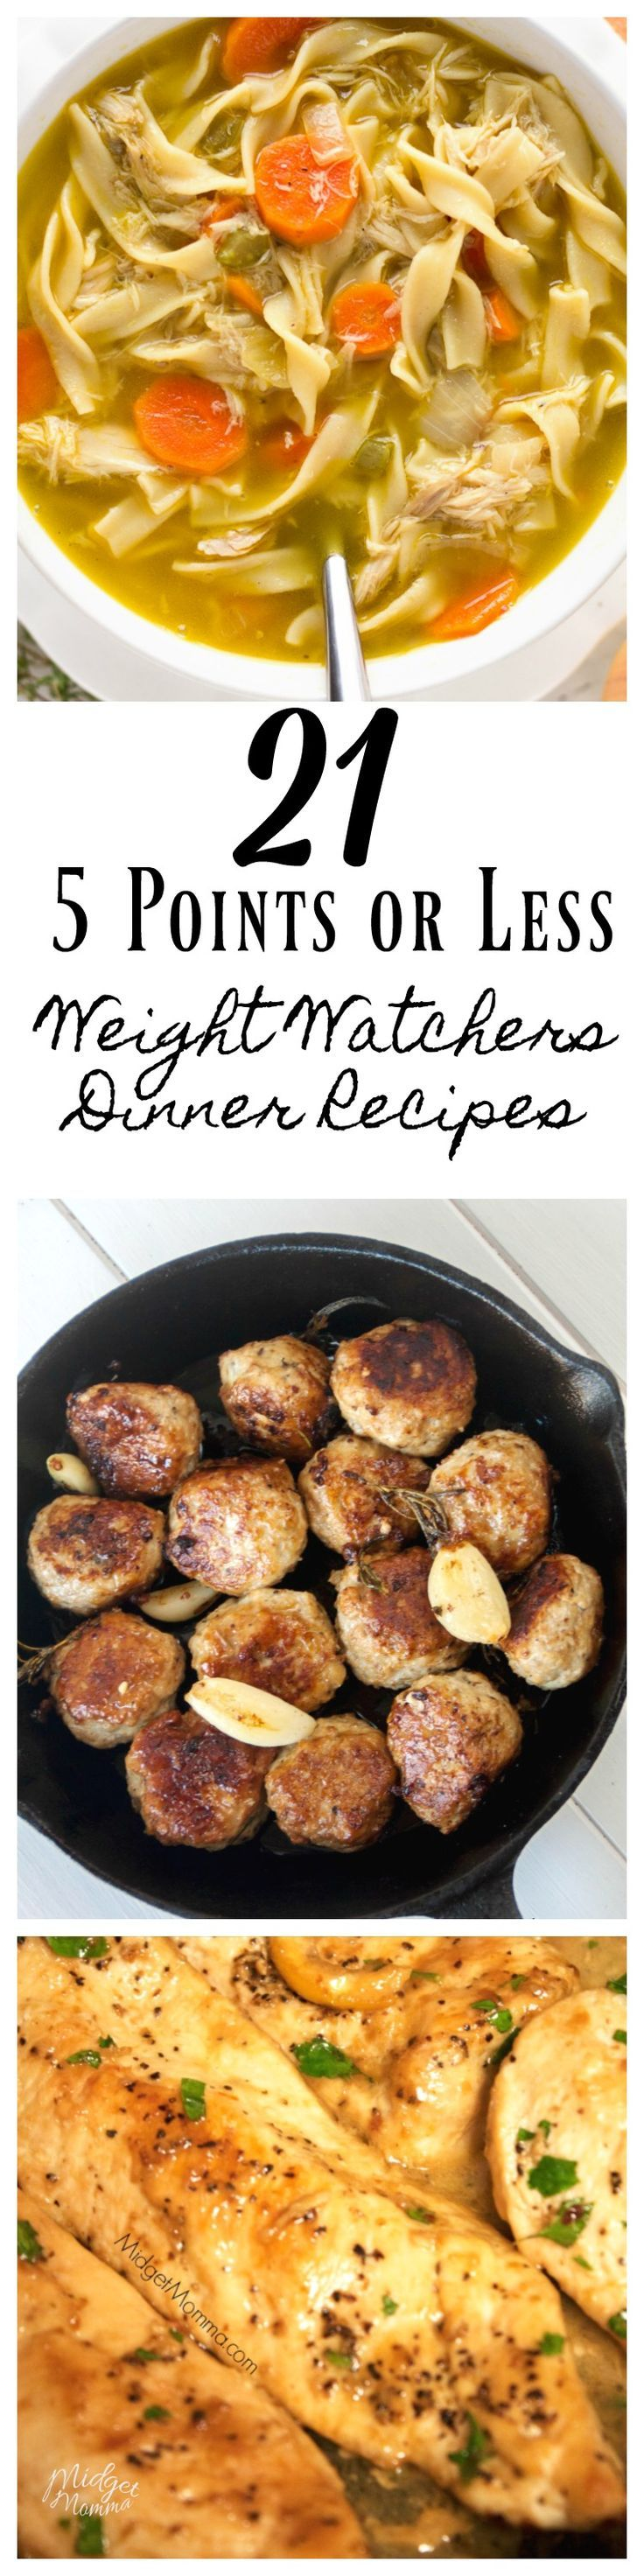 Enjoy your Weight Watchers Diet with these Points or Less Weight Watchers Dinner Recipes. Being on weight watchers means you get to eat tasty dinners and not feel like you are on a diet! #WeightWatchers #weightwatchersrecipes #dinner